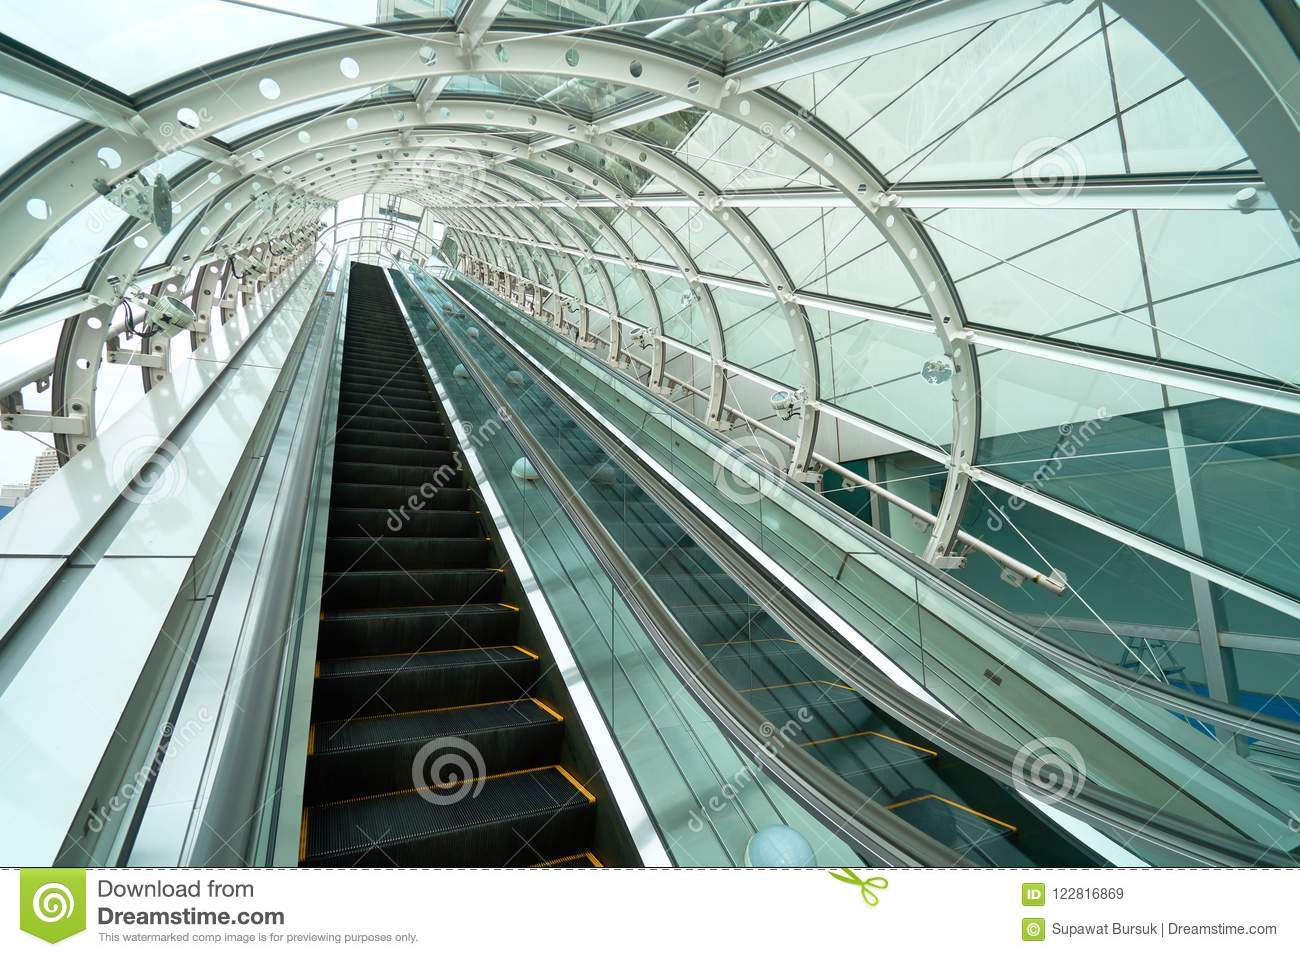 Escalator up and down Sneak through the glass roof. To prevent r